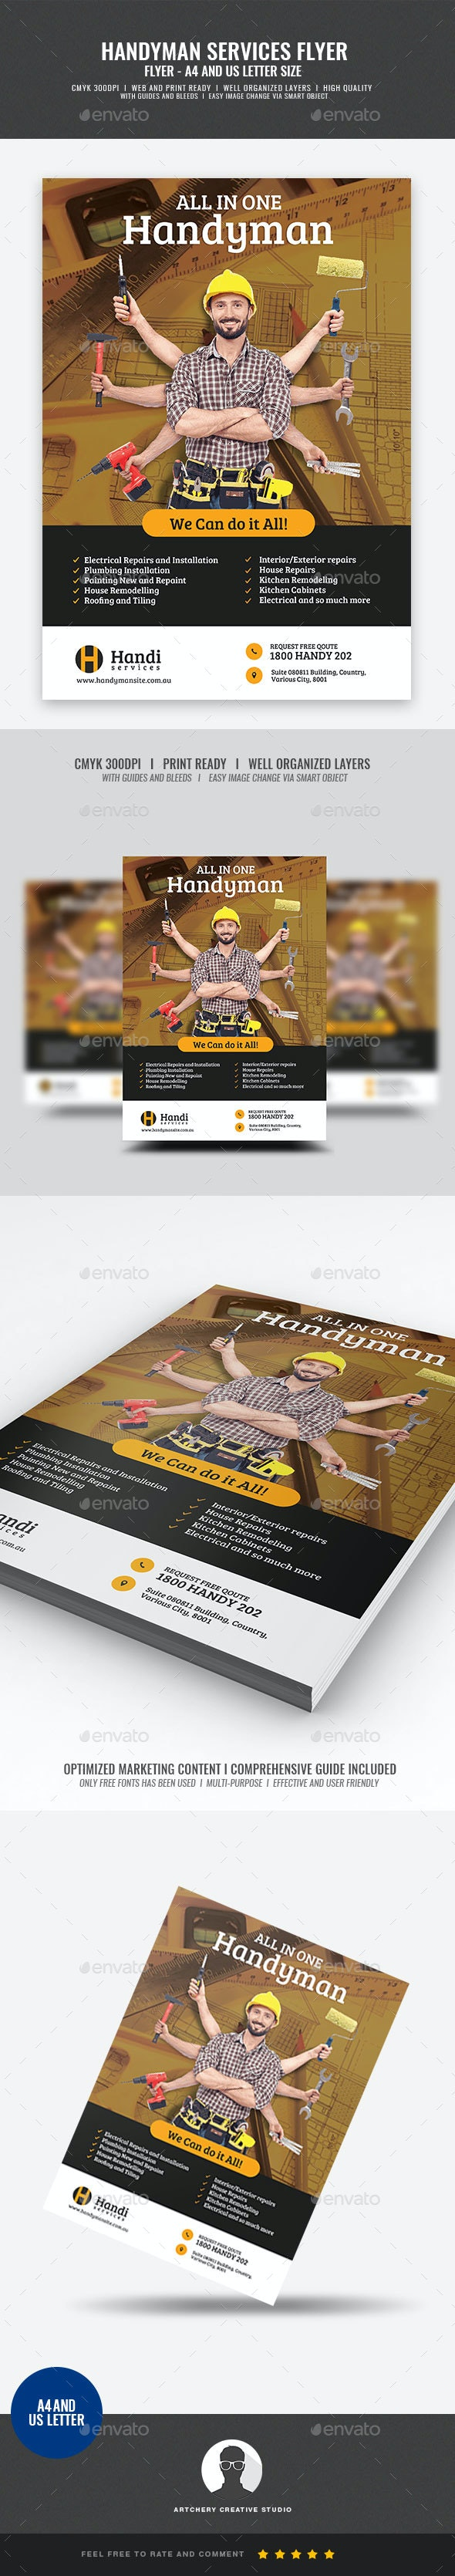 Handyman Promotional Flyer - Corporate Flyers